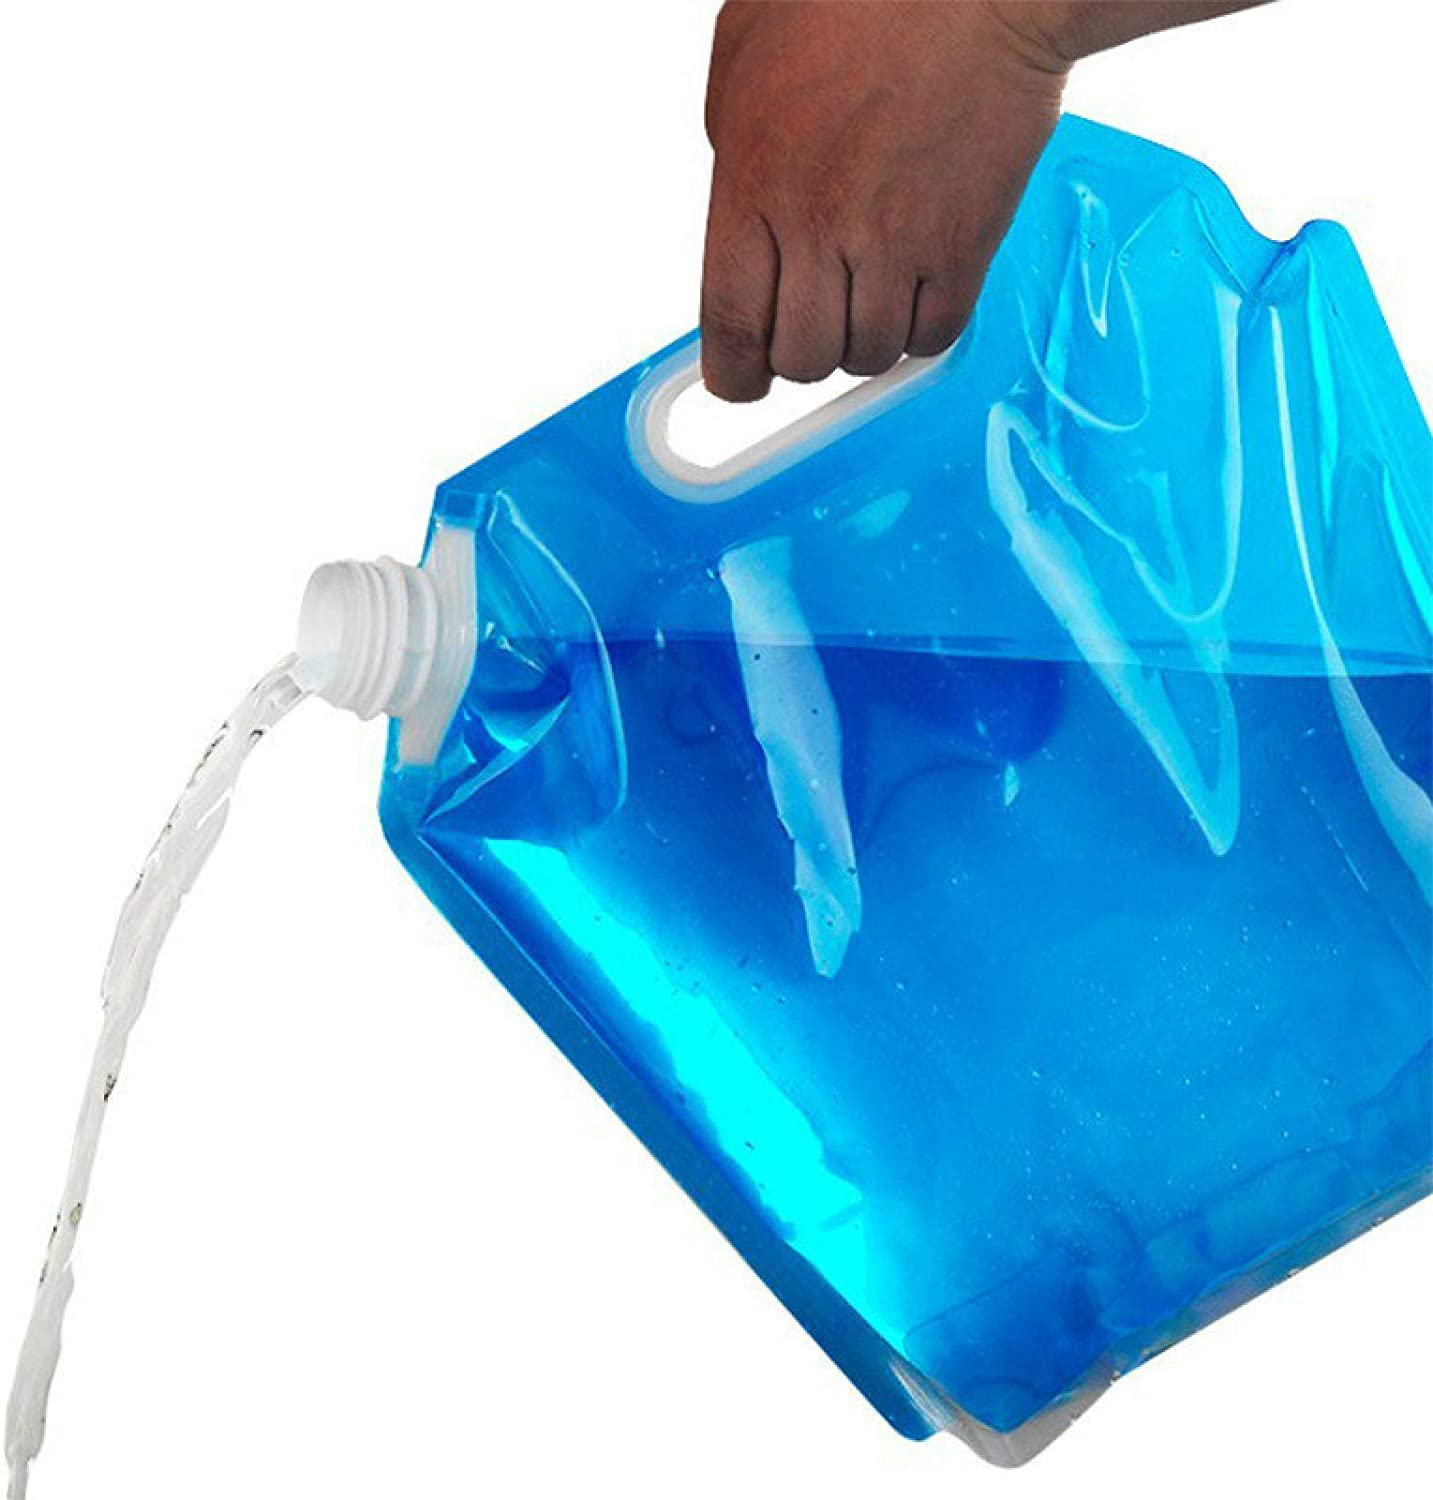 QWEQWE Collapsible Water Container Bag, Freezable, Plastic Water Carrier Tank, Outdoor Folding Water Bag for Sport Camping Riding Mountaineer Backoacking, Food Grade,Water Storage containers,2Pack